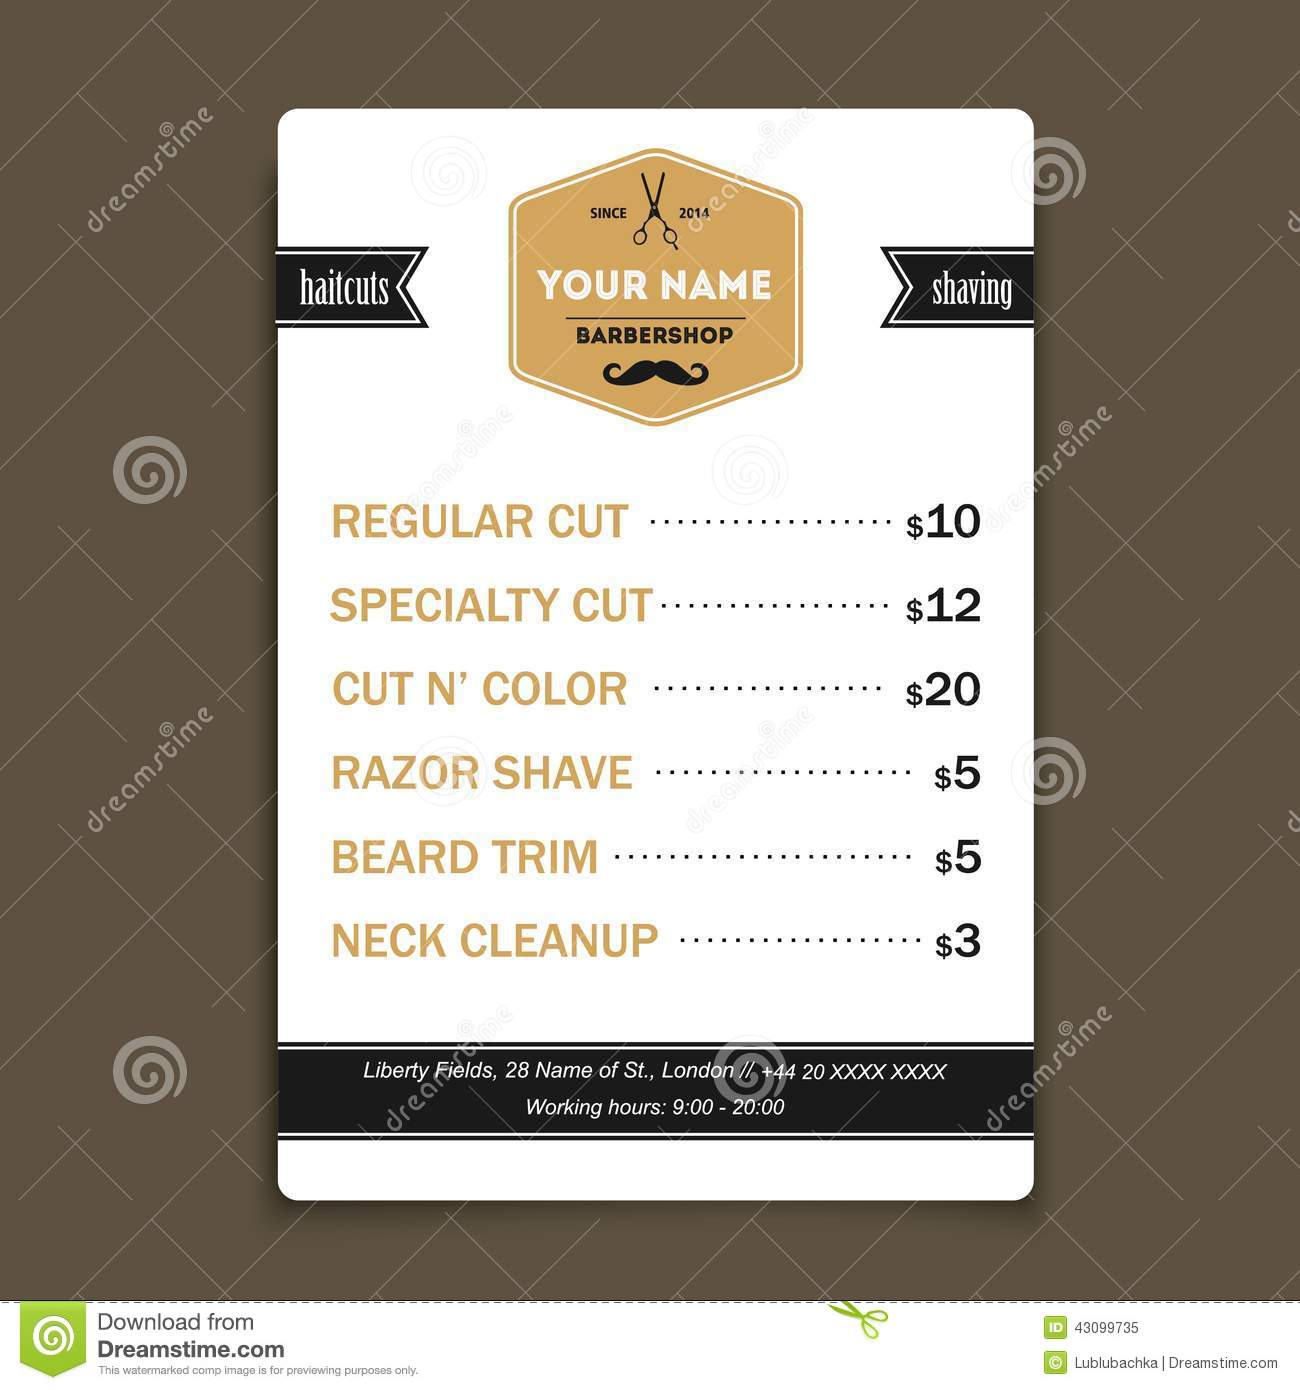 Hair salon barber shop services list design template stock vector hair salon barber shop services list design template wajeb Image collections